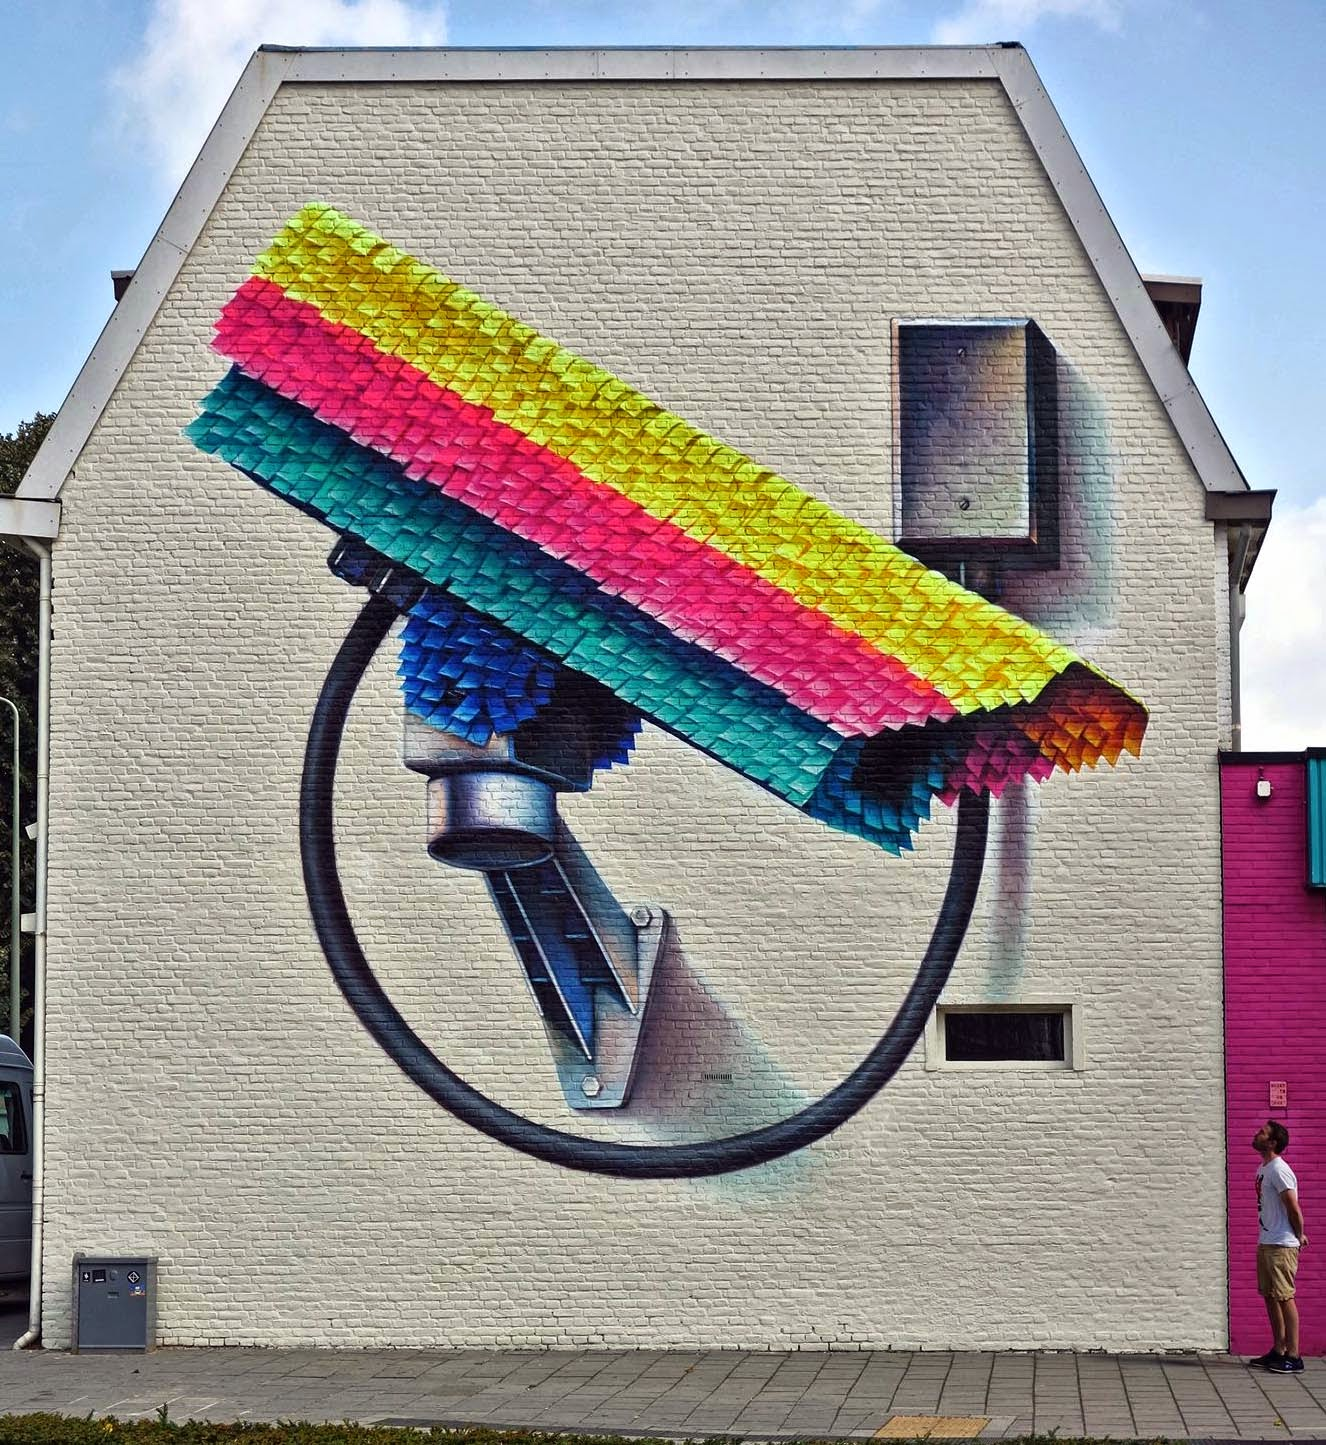 The Heerlen street art mural project is coming to an end with yet another brilliant new piece from Super-A.